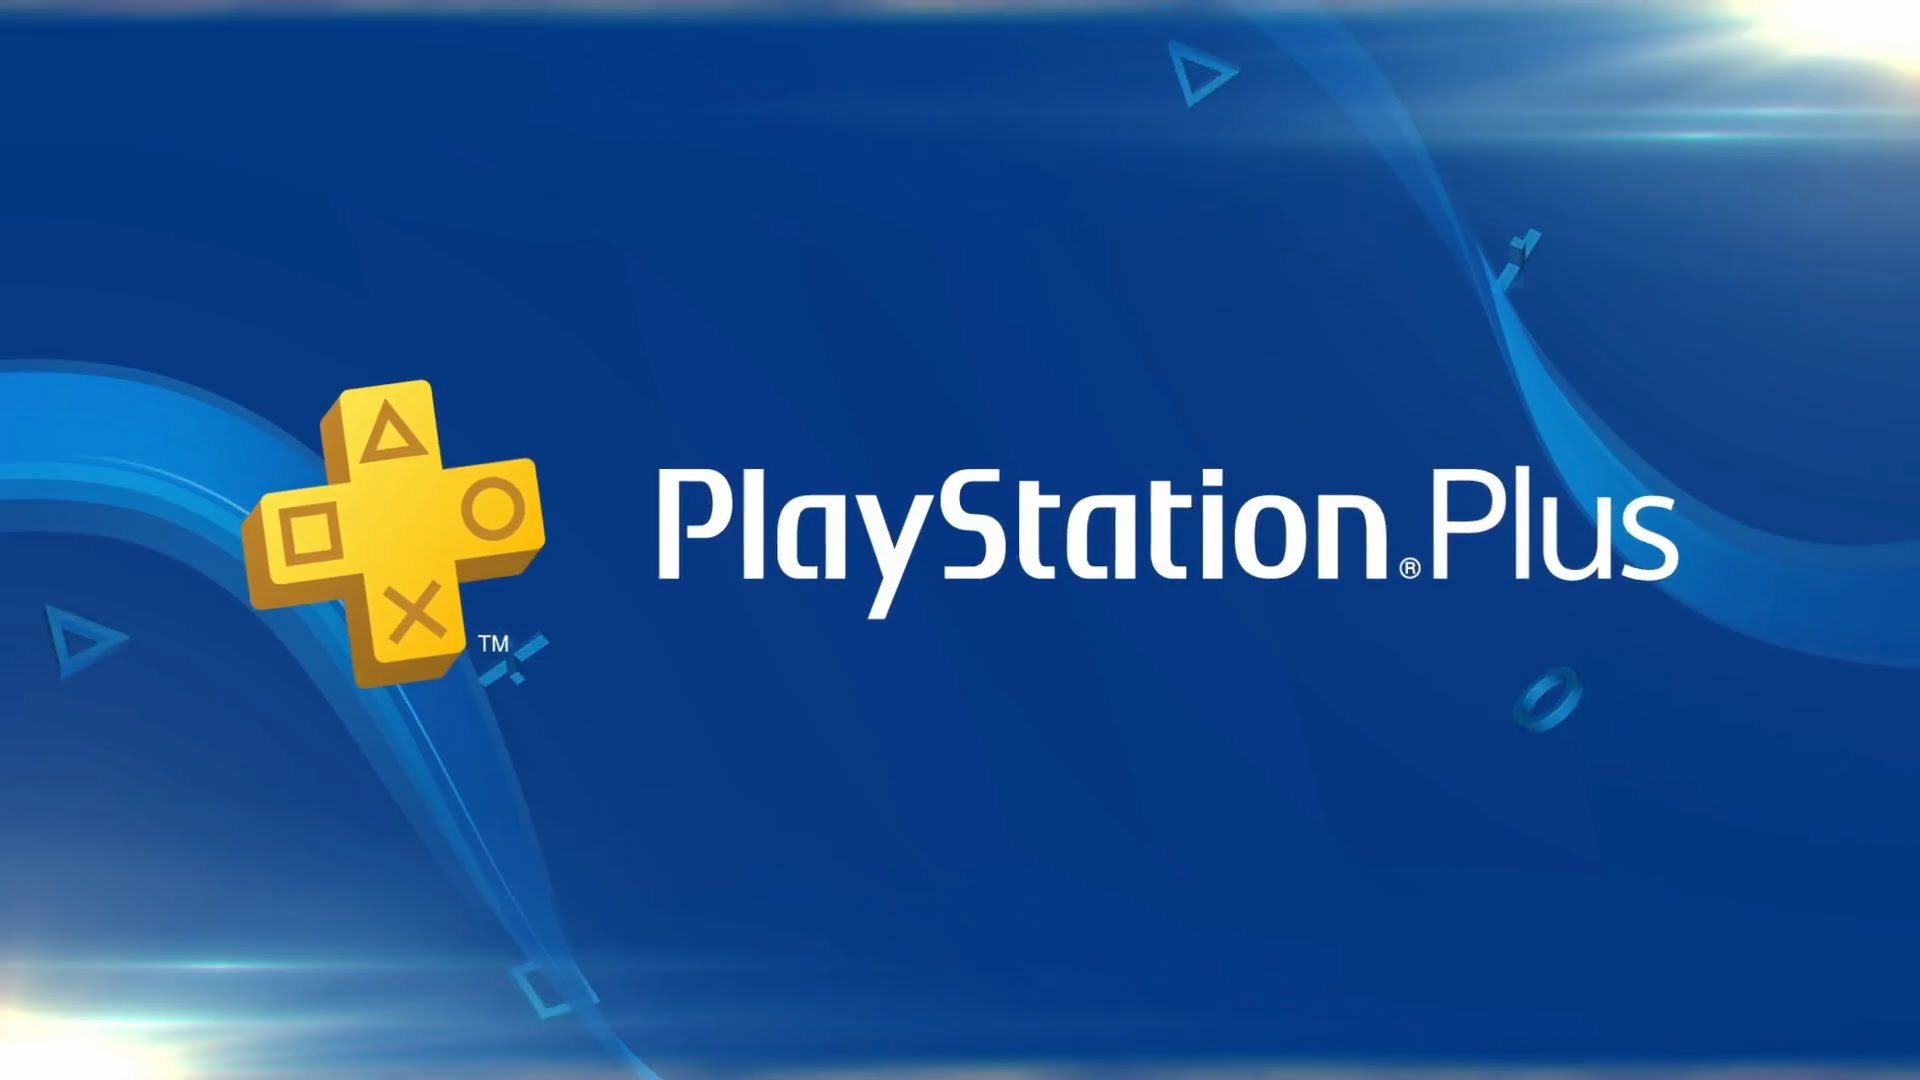 PS5: Sony reveals all the details about PlayStation Plus